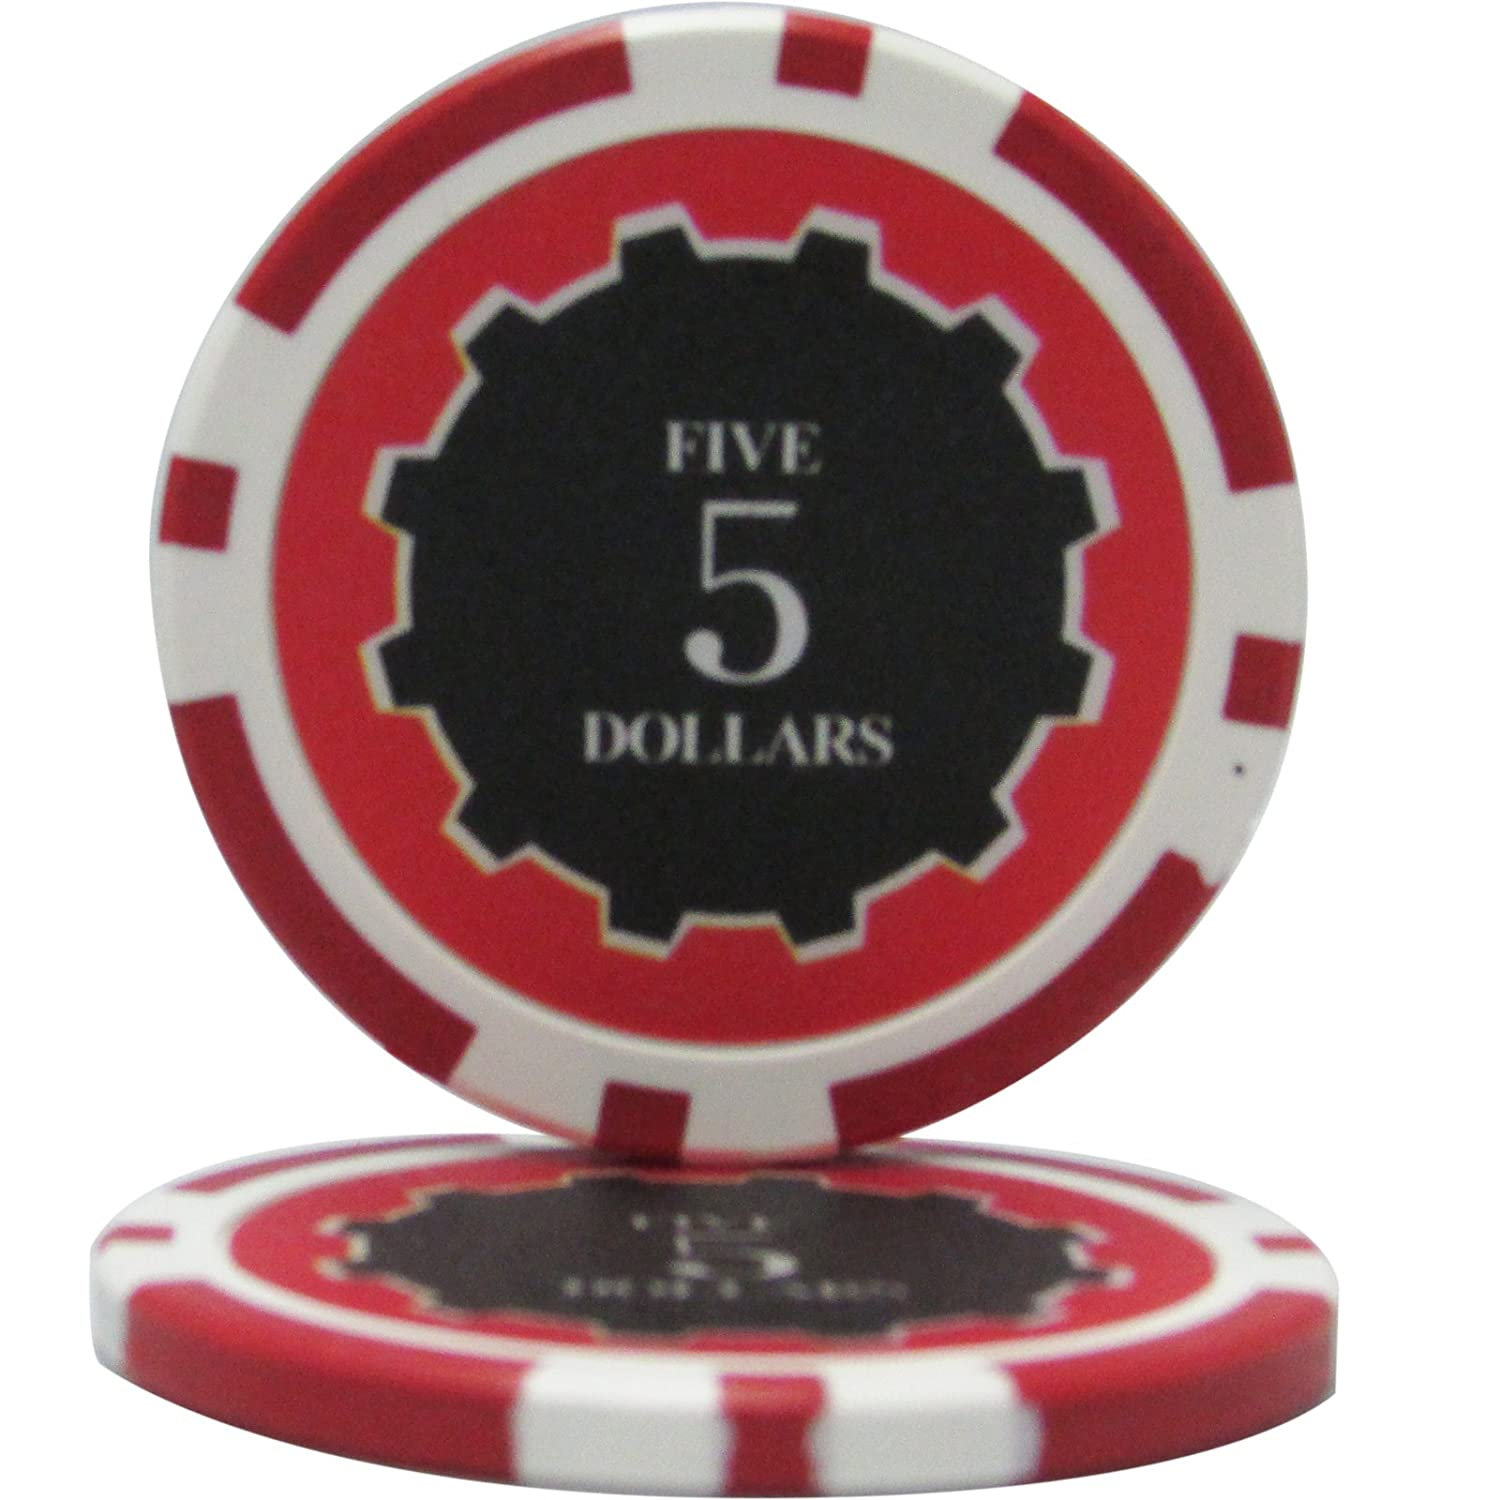 50 $ Eclipse 14 5 Eclipse CasinoクレイComposite B01D7TG4O6 14 Gram Poker Chips B01D7TG4O6, インテリアの壱番館:04a28c04 --- itxassou.fr